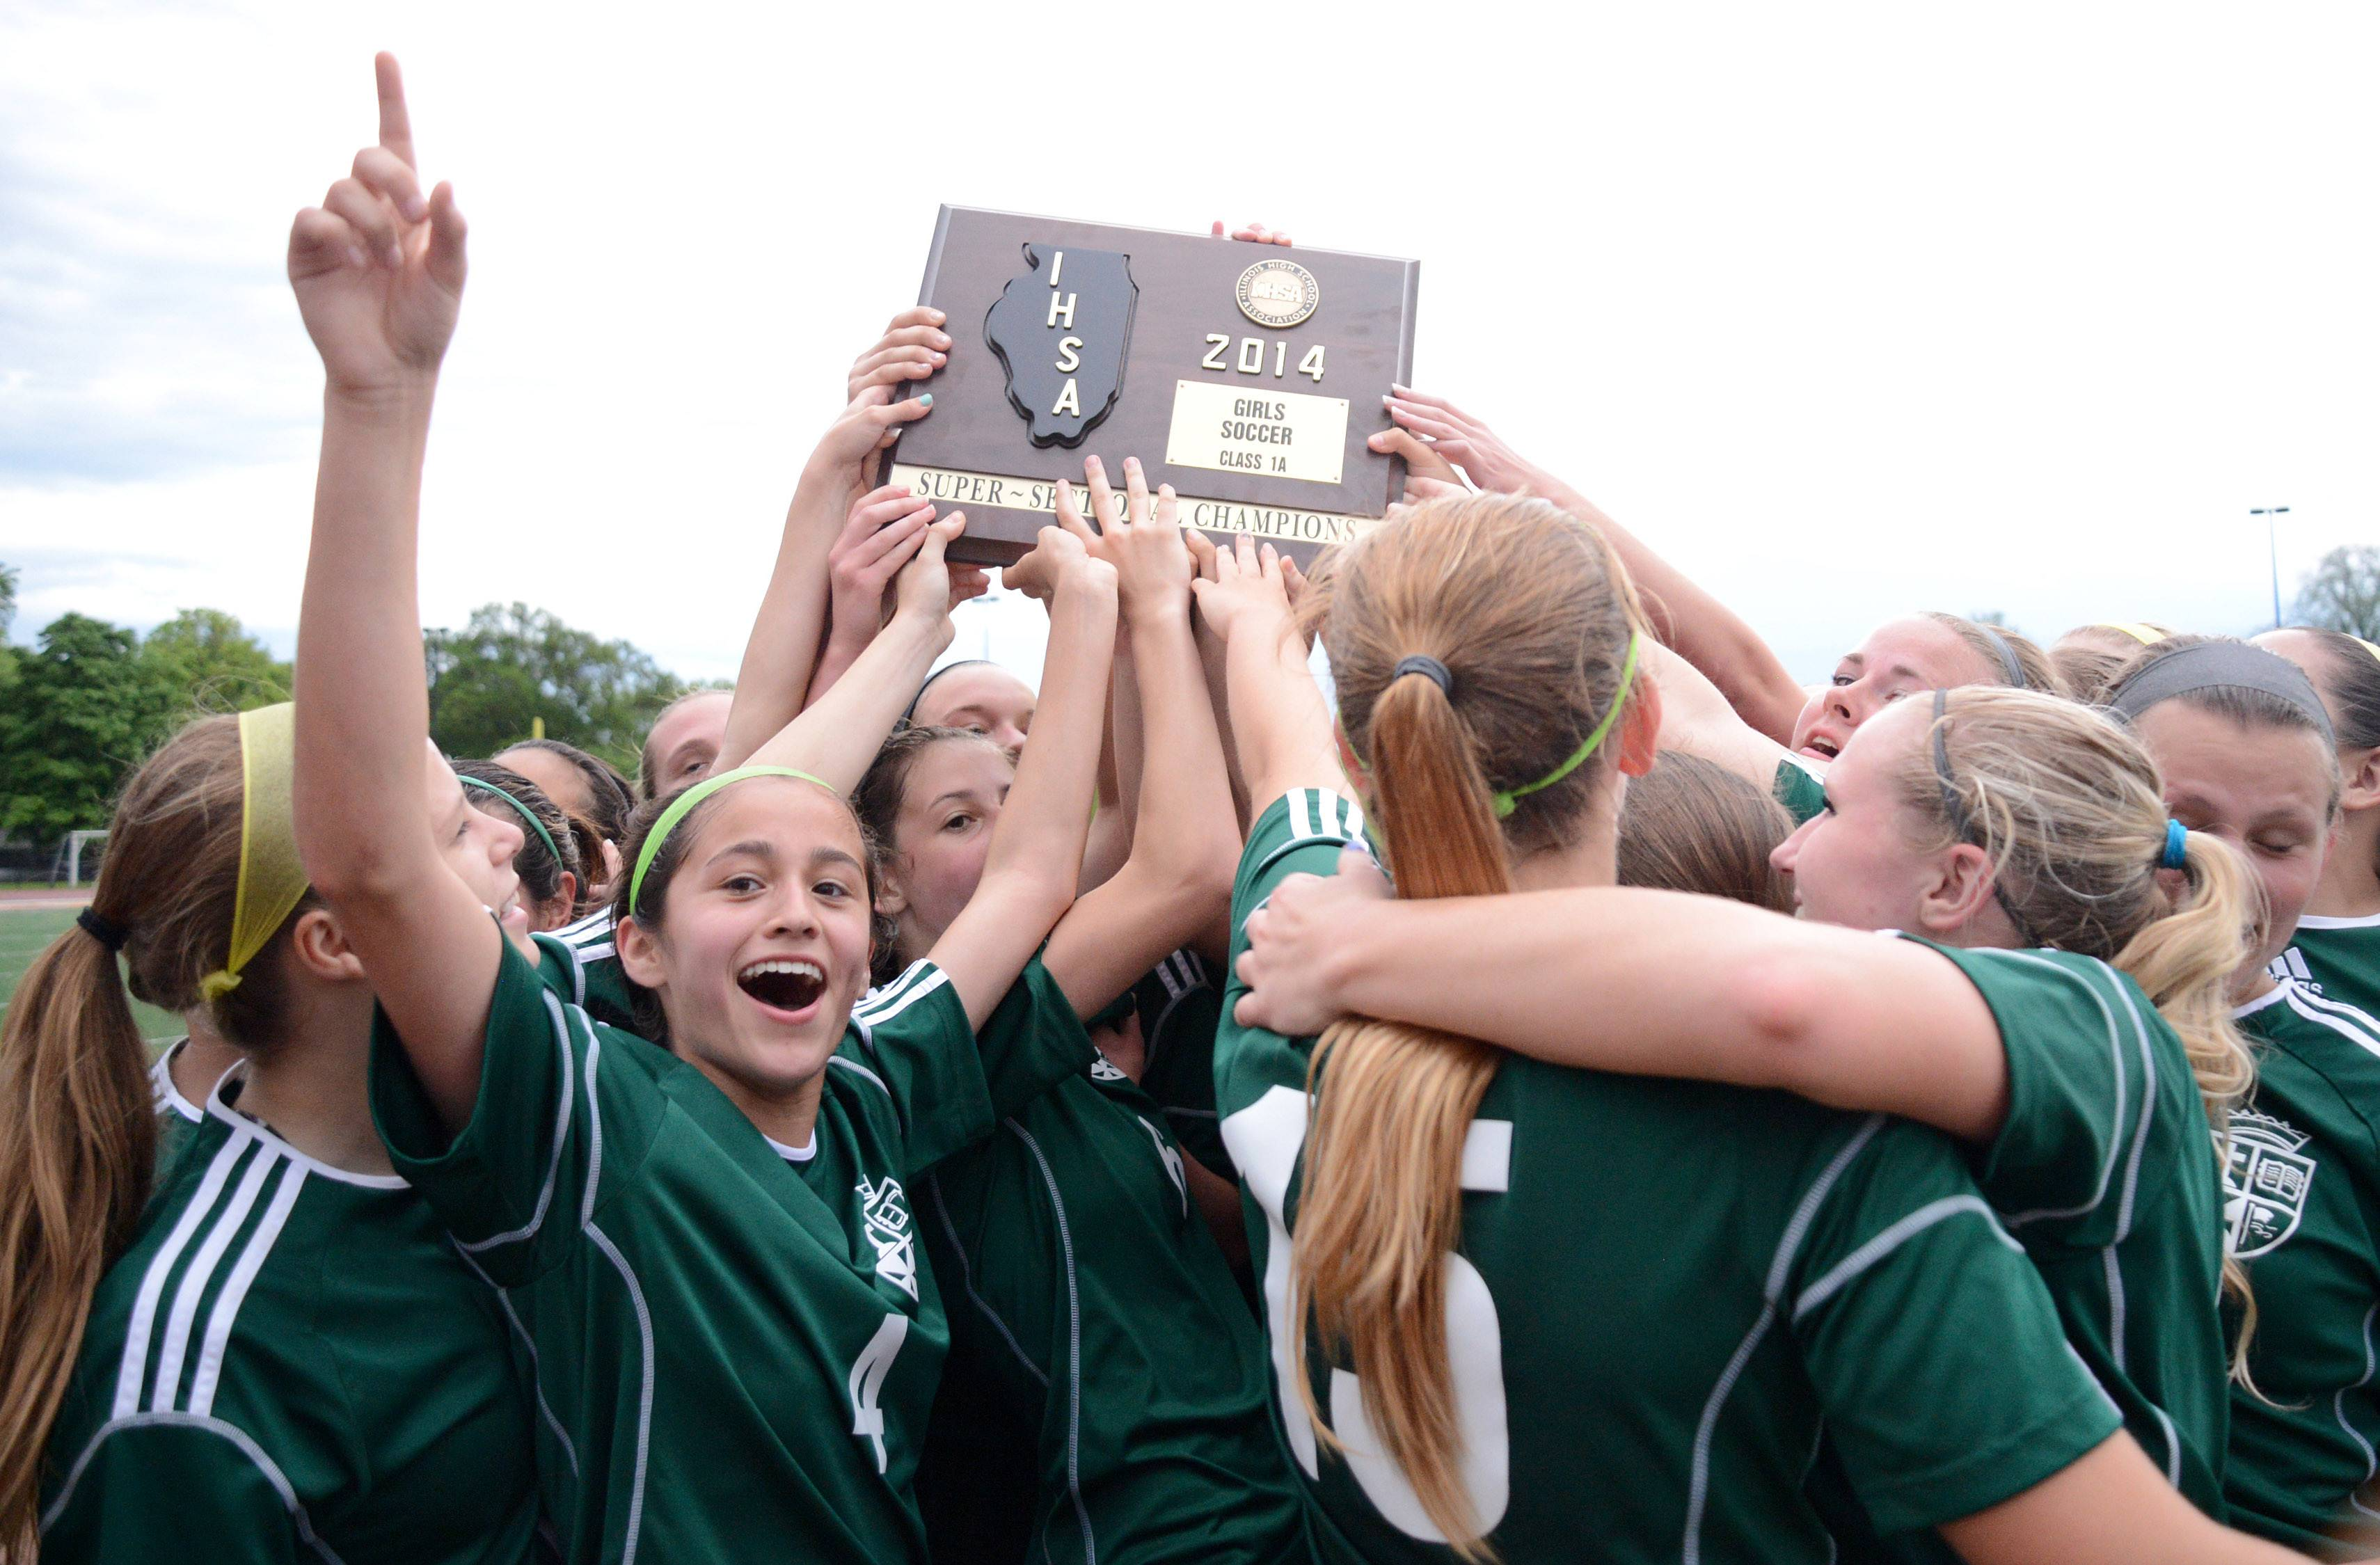 St. Edward's Monica Ramirez, facing, celebrates with teammates after their Class 1A supersectional win over Chicago Latin at Concordia University in River Forest on Tuesday, May 27.